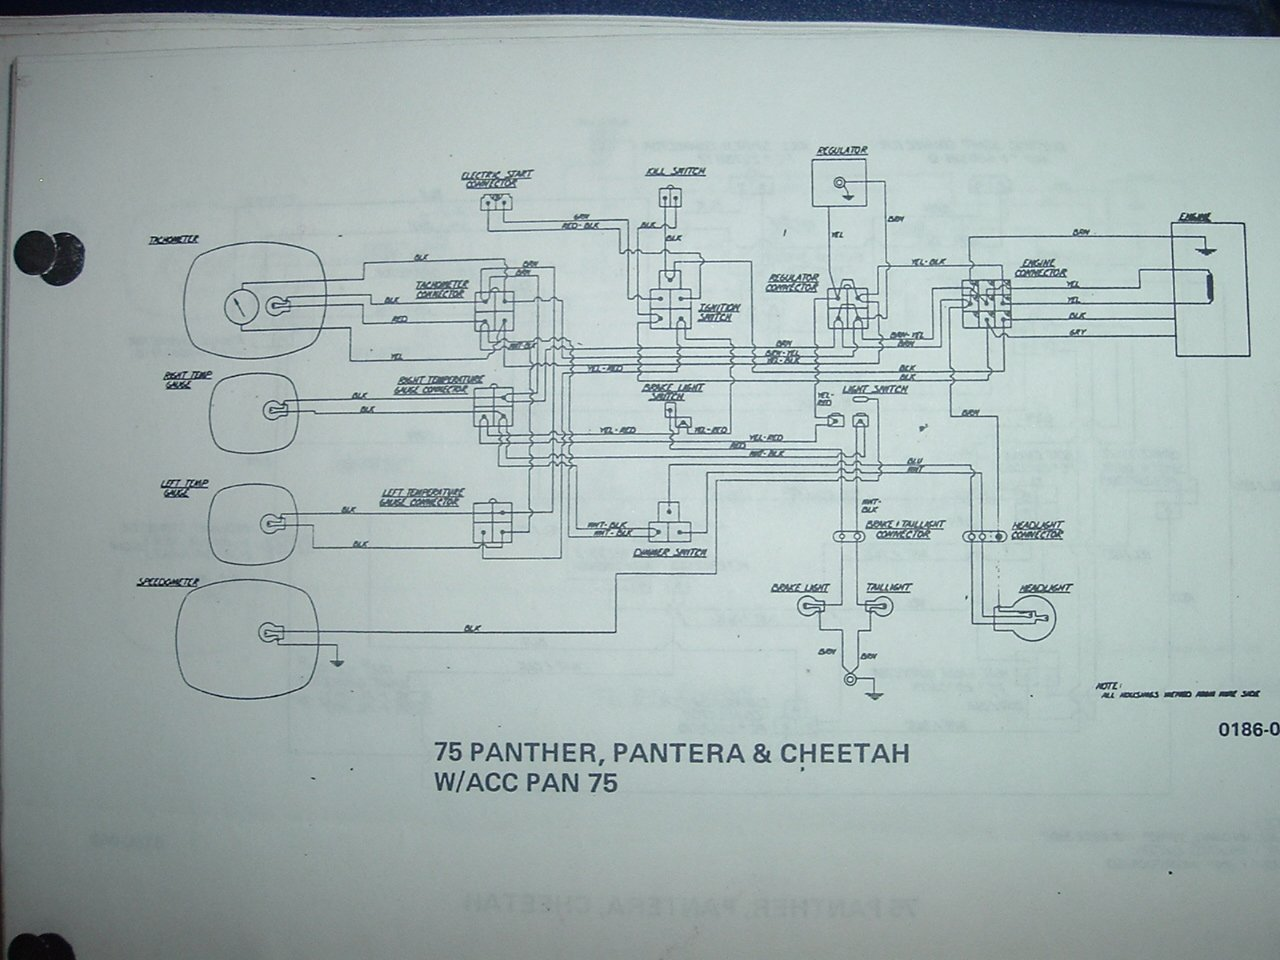 Wiring Diagram Super 1048 New Holland Trusted Diagrams 75b Arctic Cat Parts And Service Manual